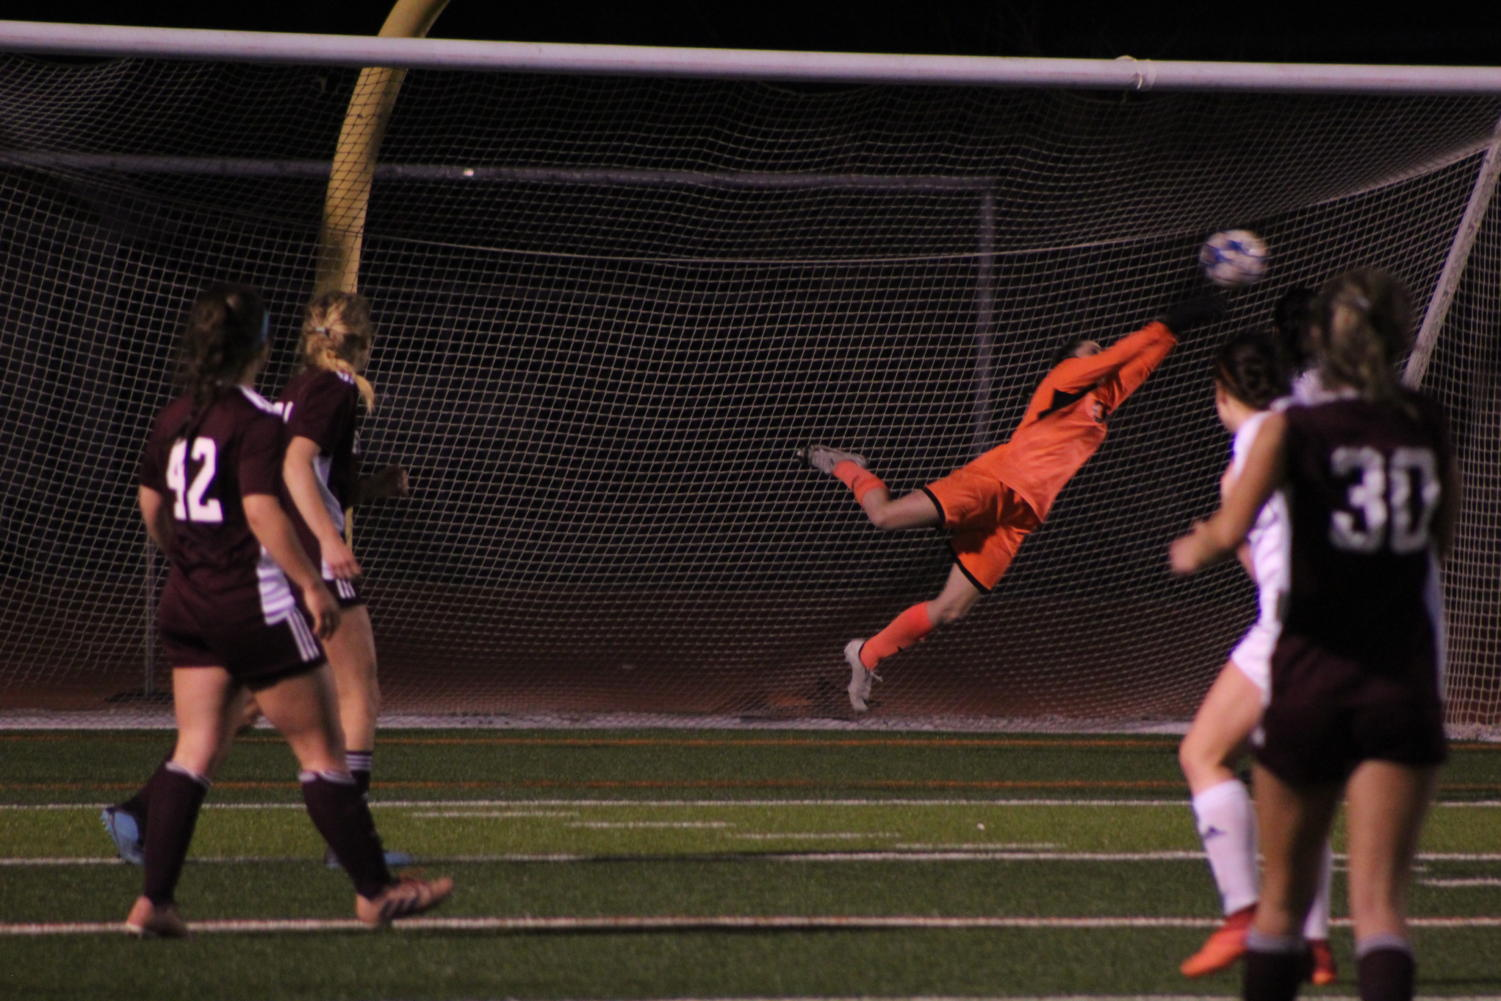 Baker makes a save as Evangel takes a shot at the goal.